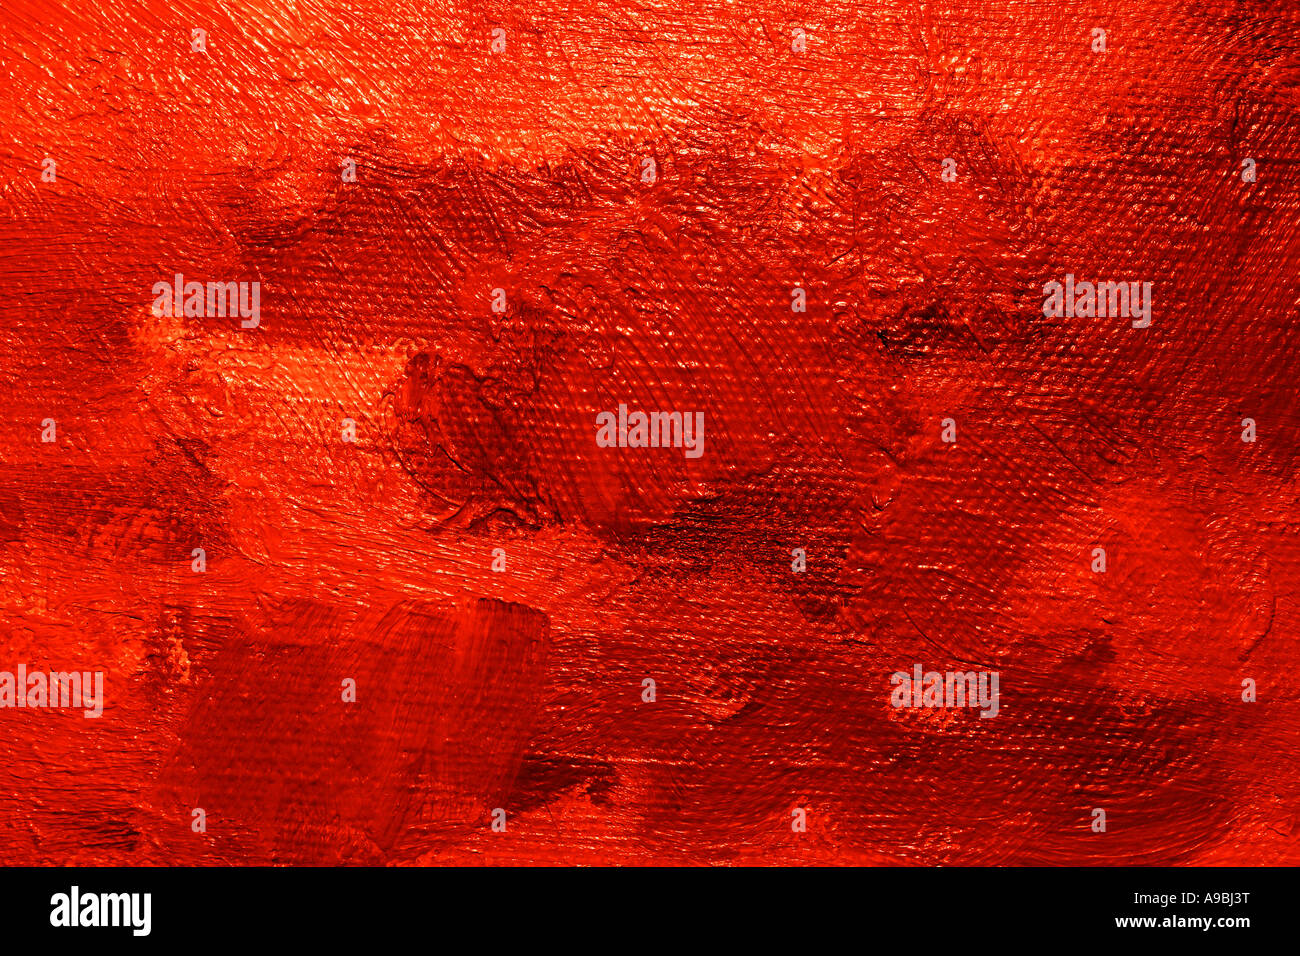 Close up of a oil painted canvas texture and brush strokes well visible - Stock Image